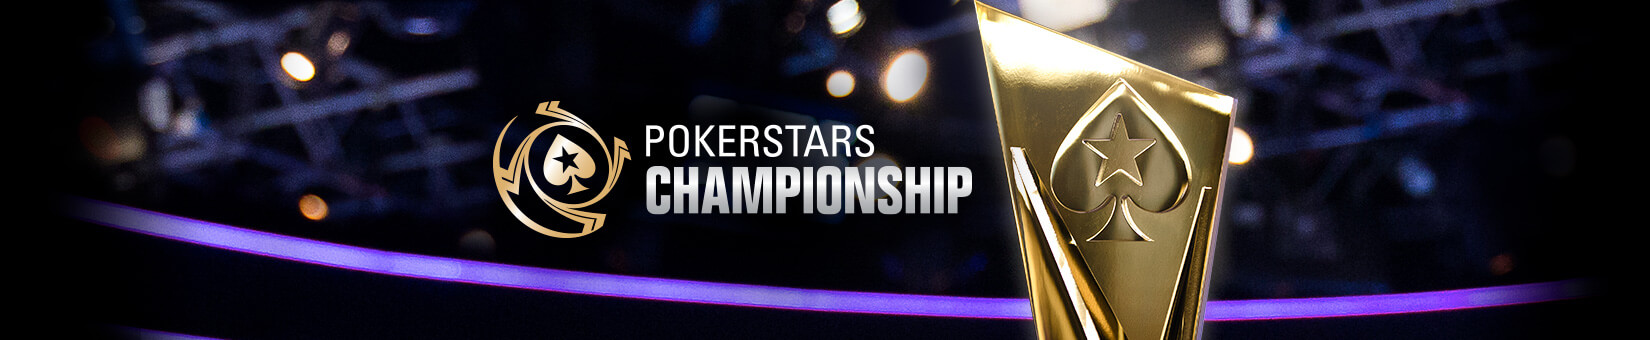 Pokerstars Support Email